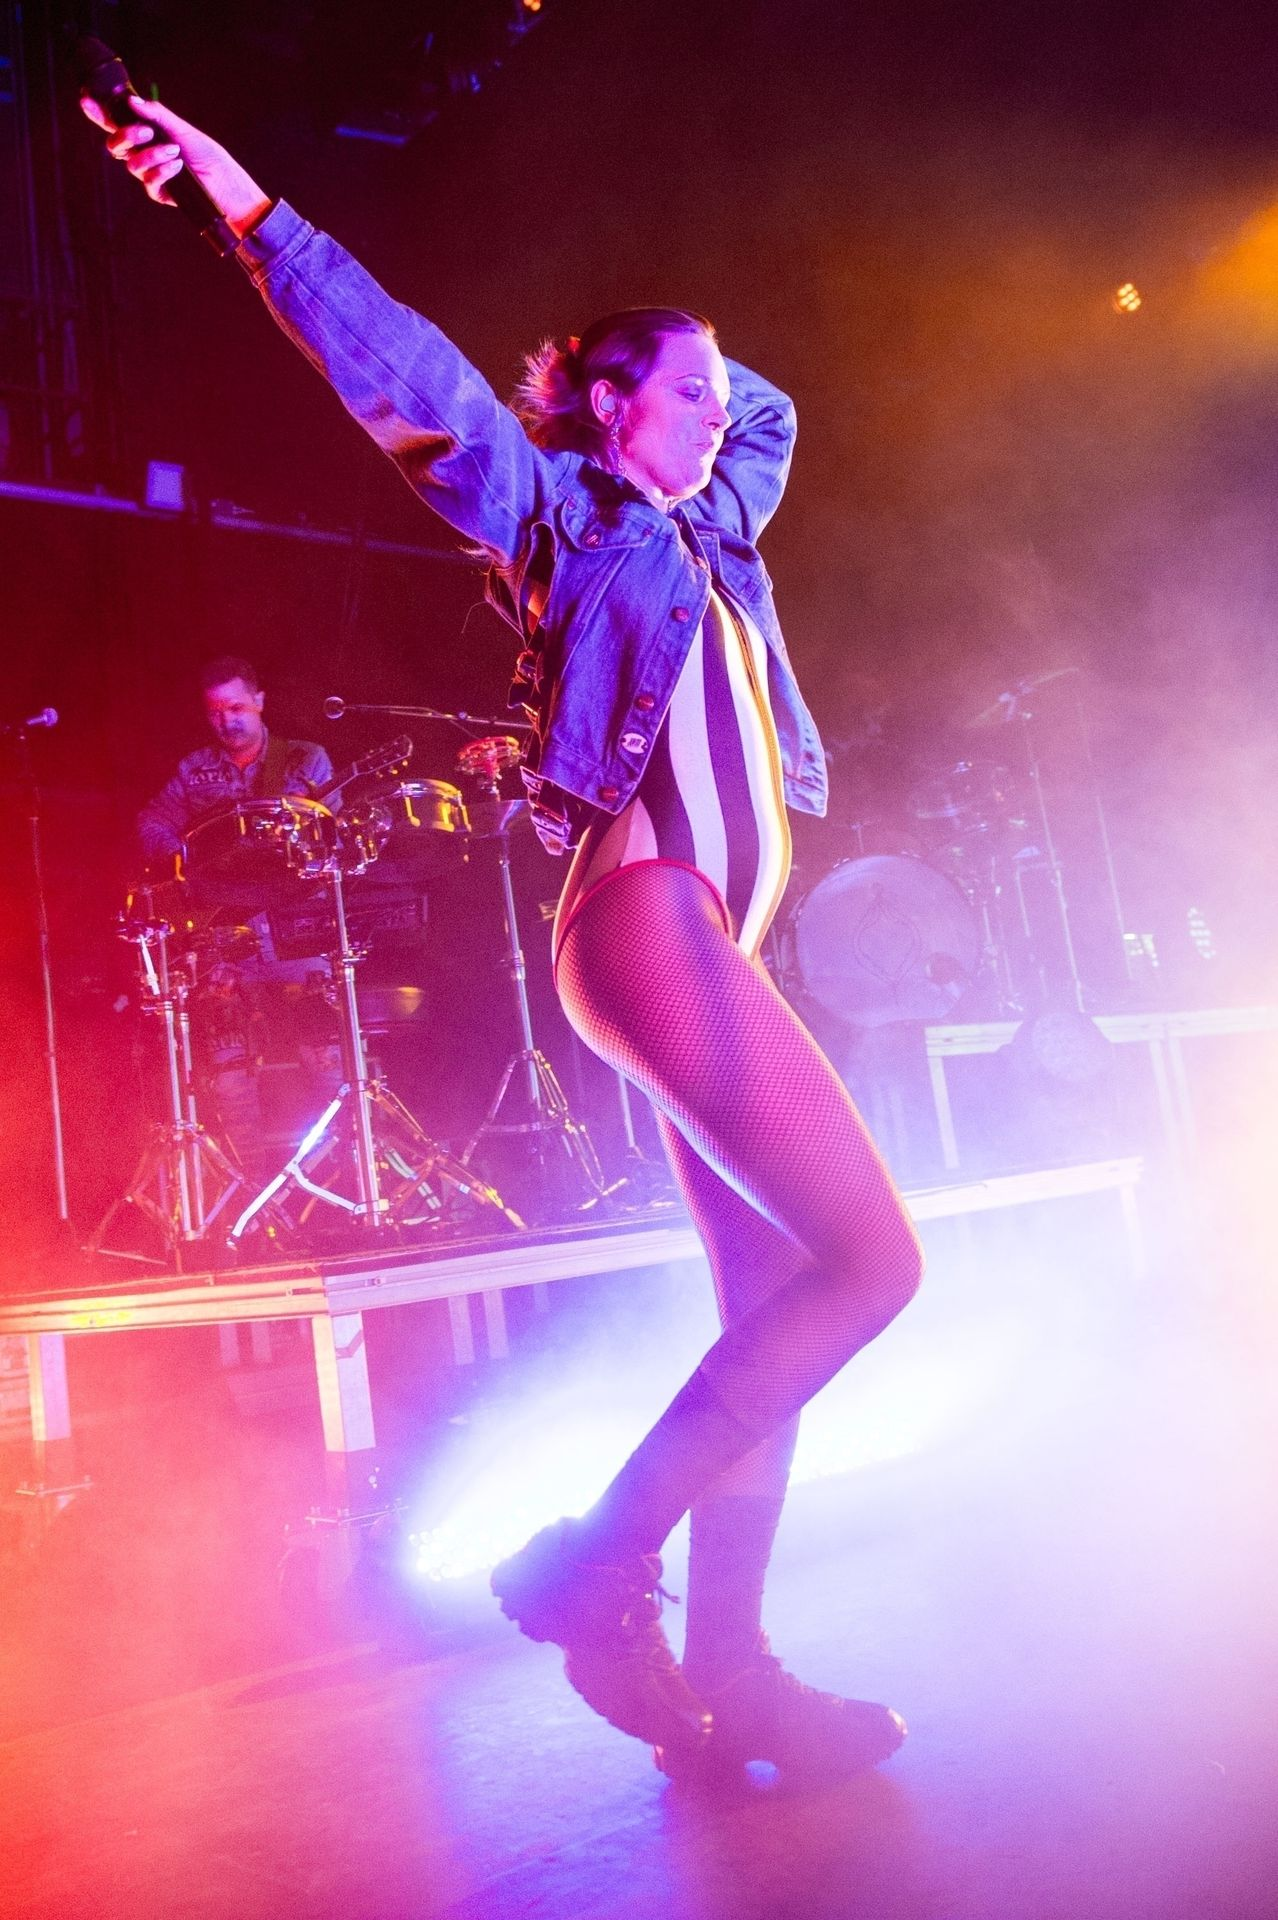 Tove Lo Is In Concert Performing Live At O2 Forum Kentish Town In London 0054